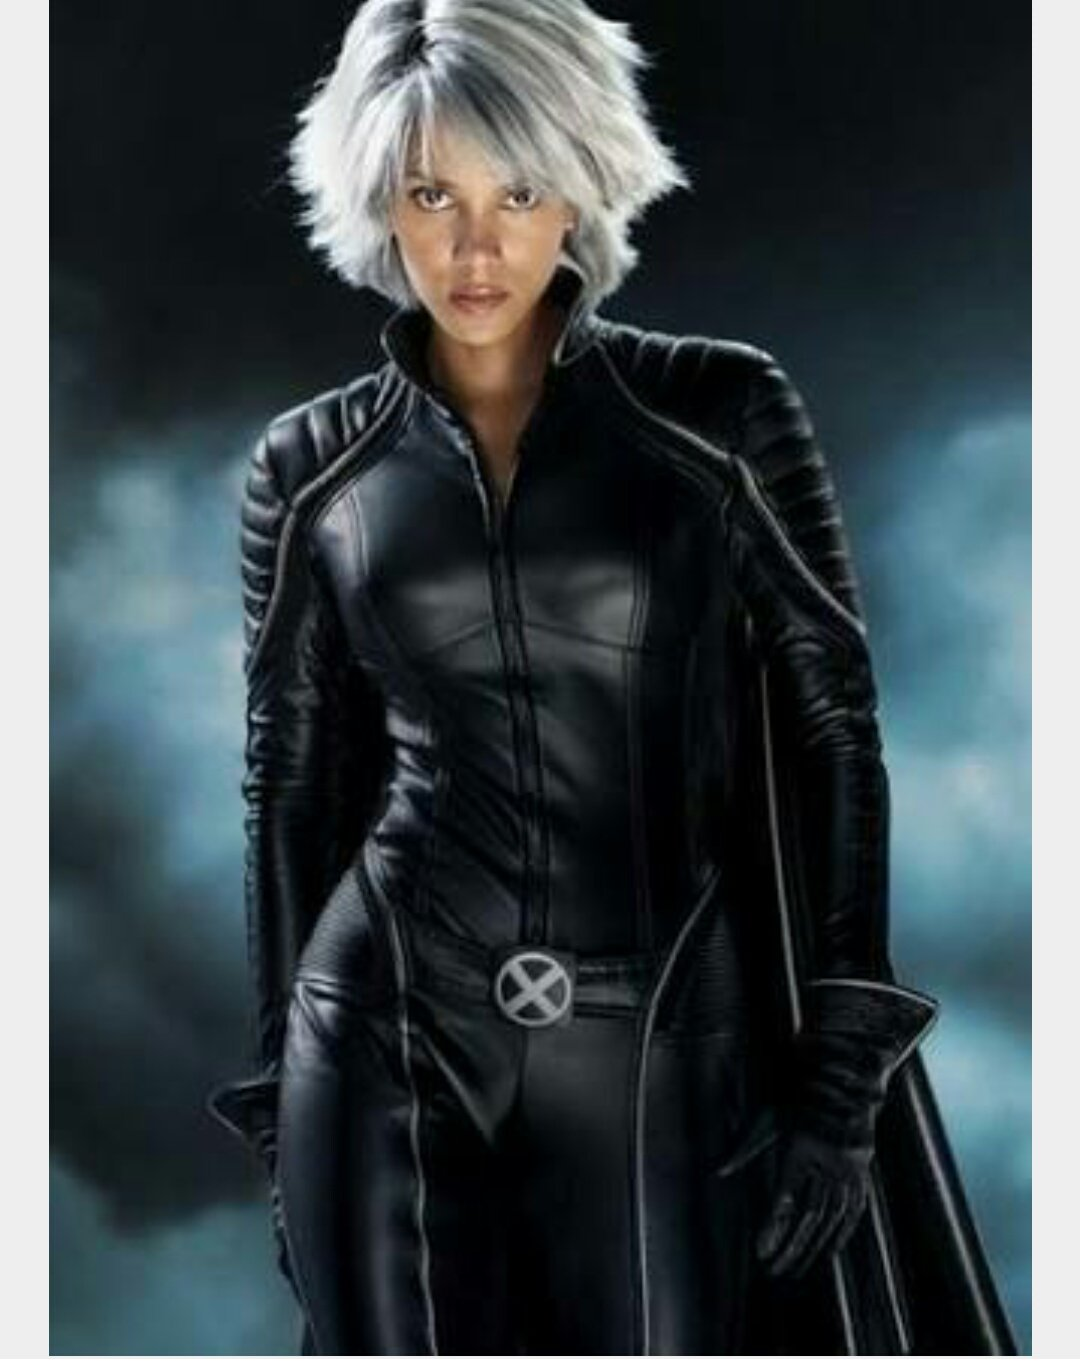 Halle Berry. Your birthday? Happy Birthday! Storm. Her performance is wonderful!